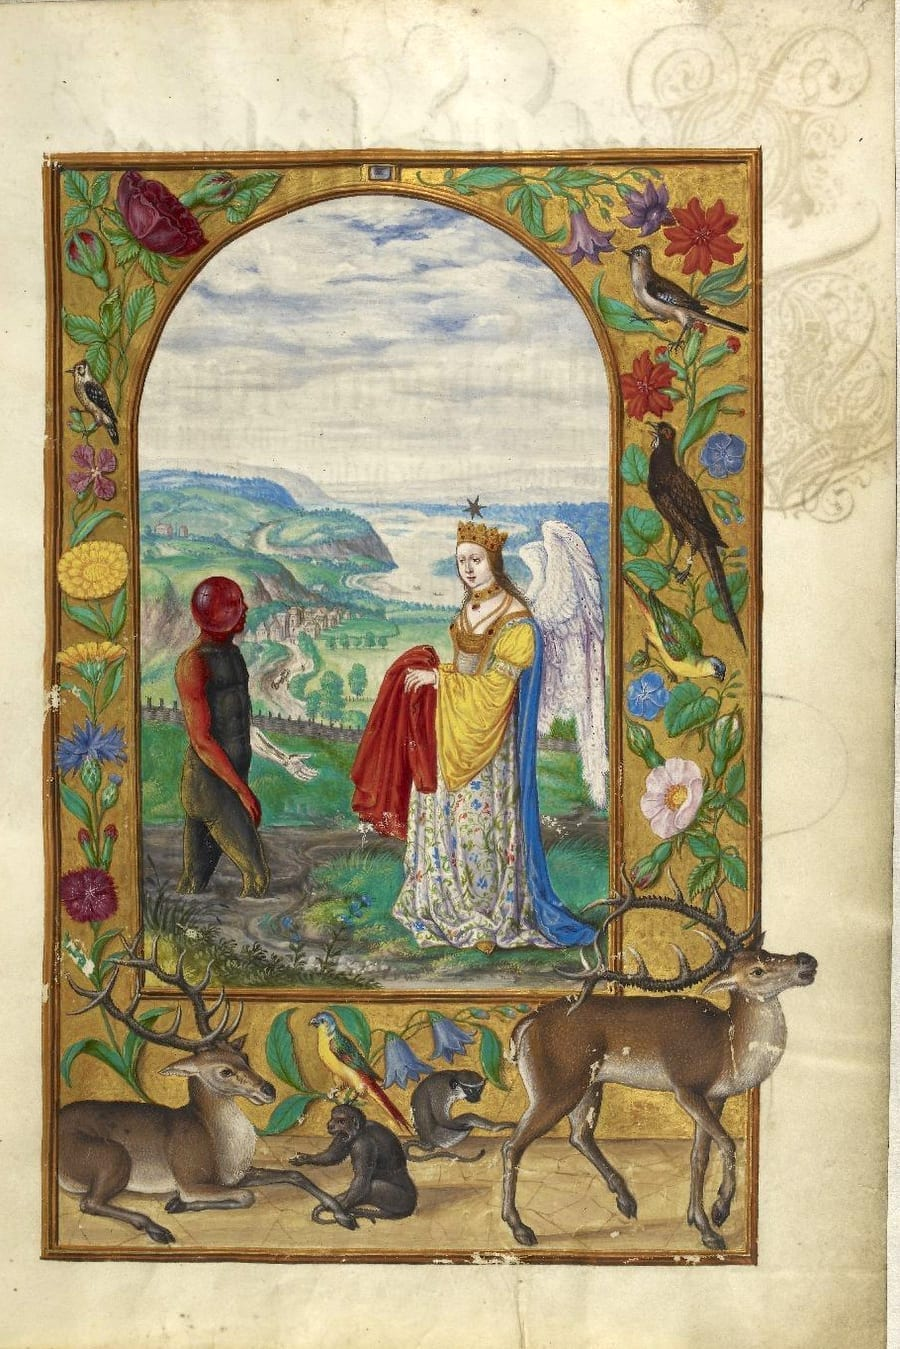 Illustration of winged queen from the Alchemical manuscript Splendor Solis